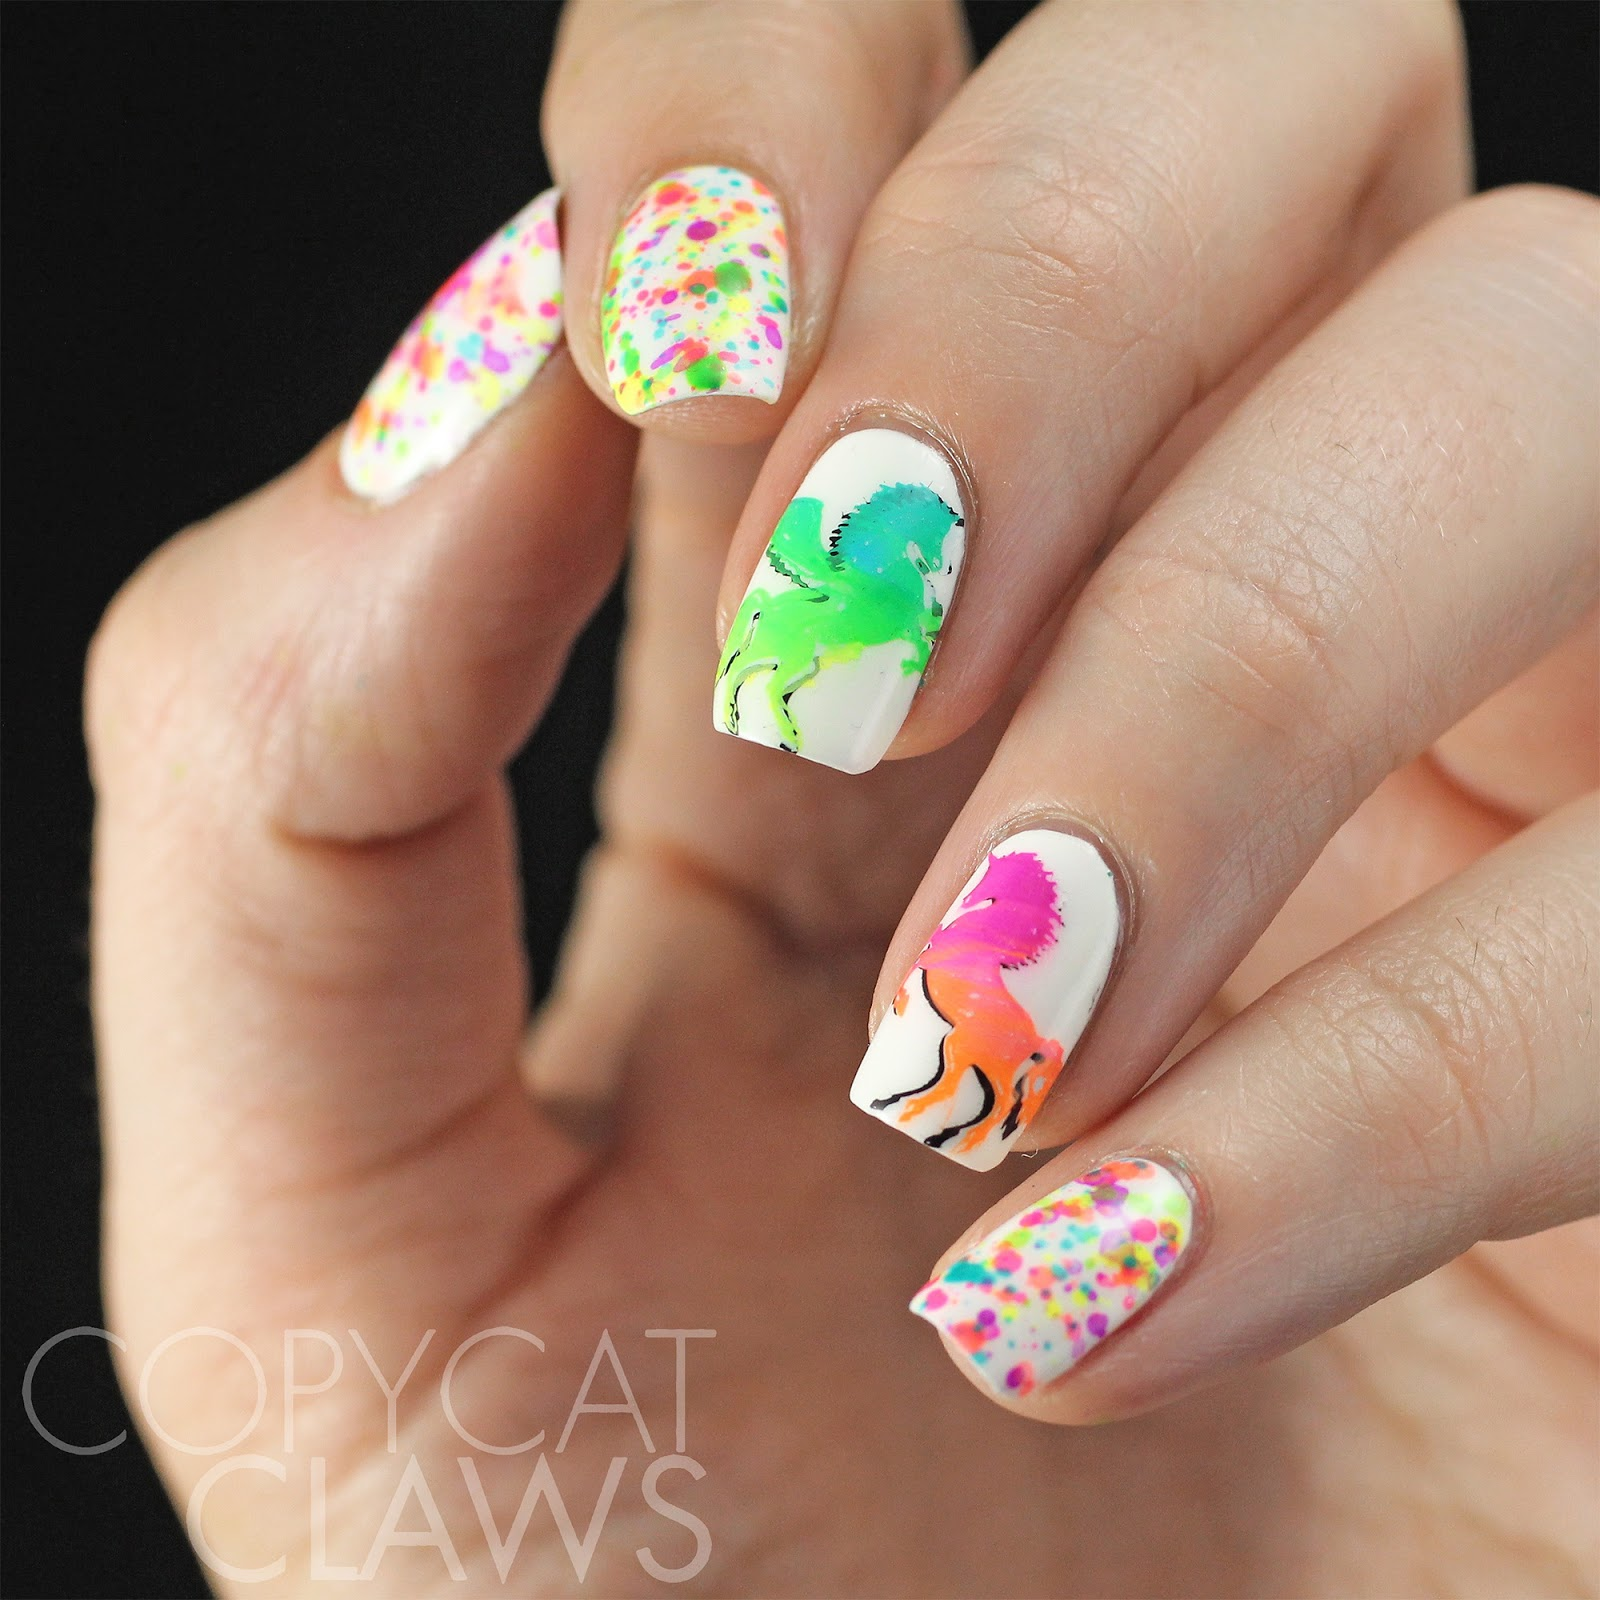 Copycat Claws: The Digit-al Dozen does Whimsy/40 Great Nail Art ...